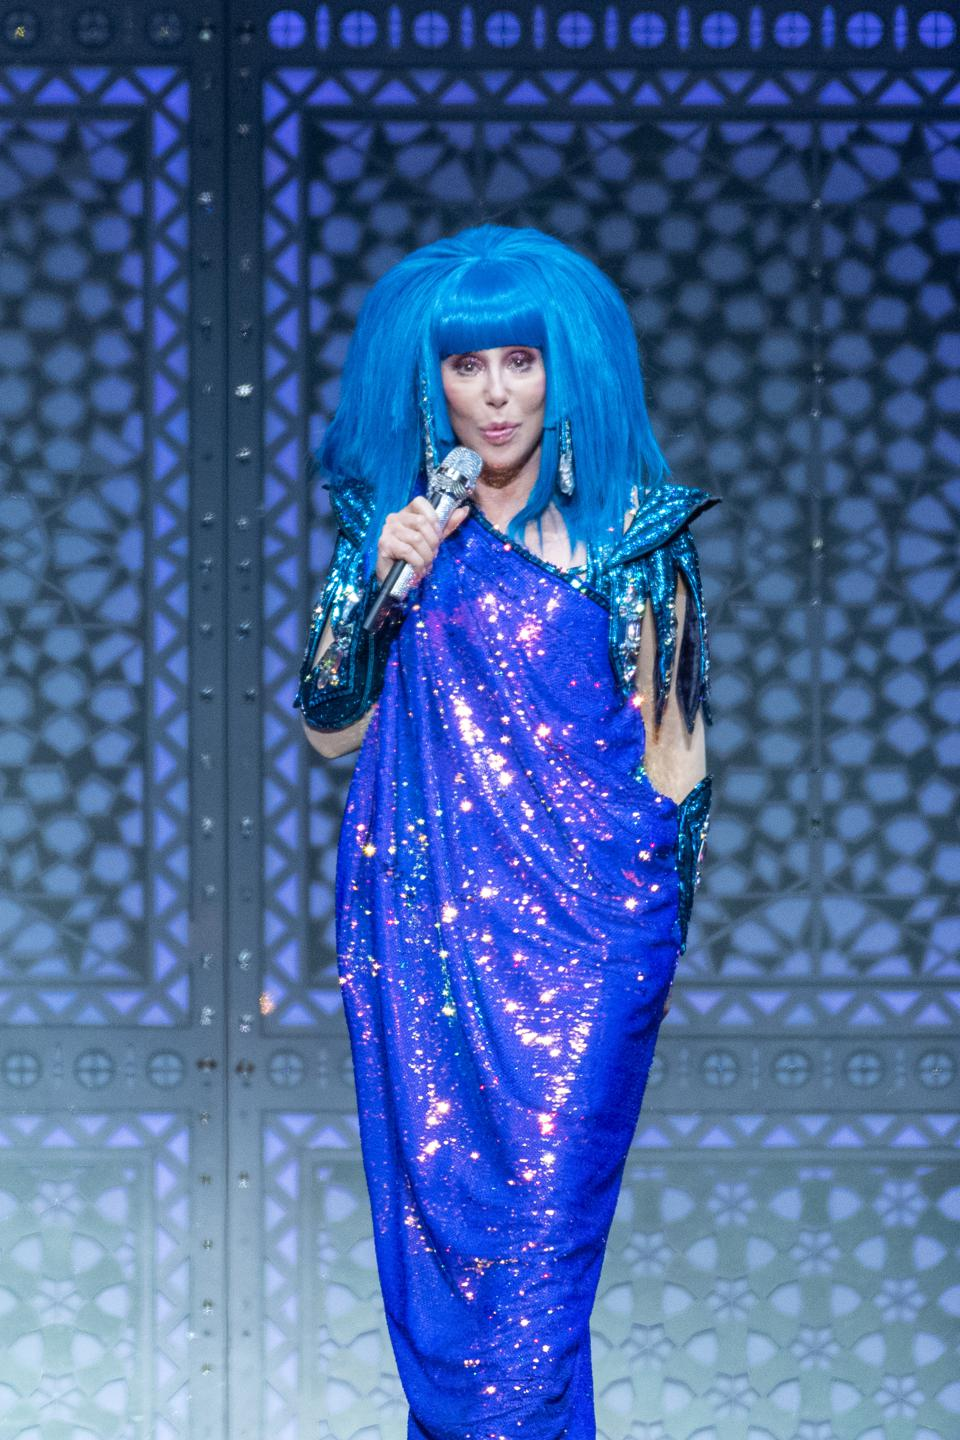 Cher Performs At The SSE Hydro, Glasgow